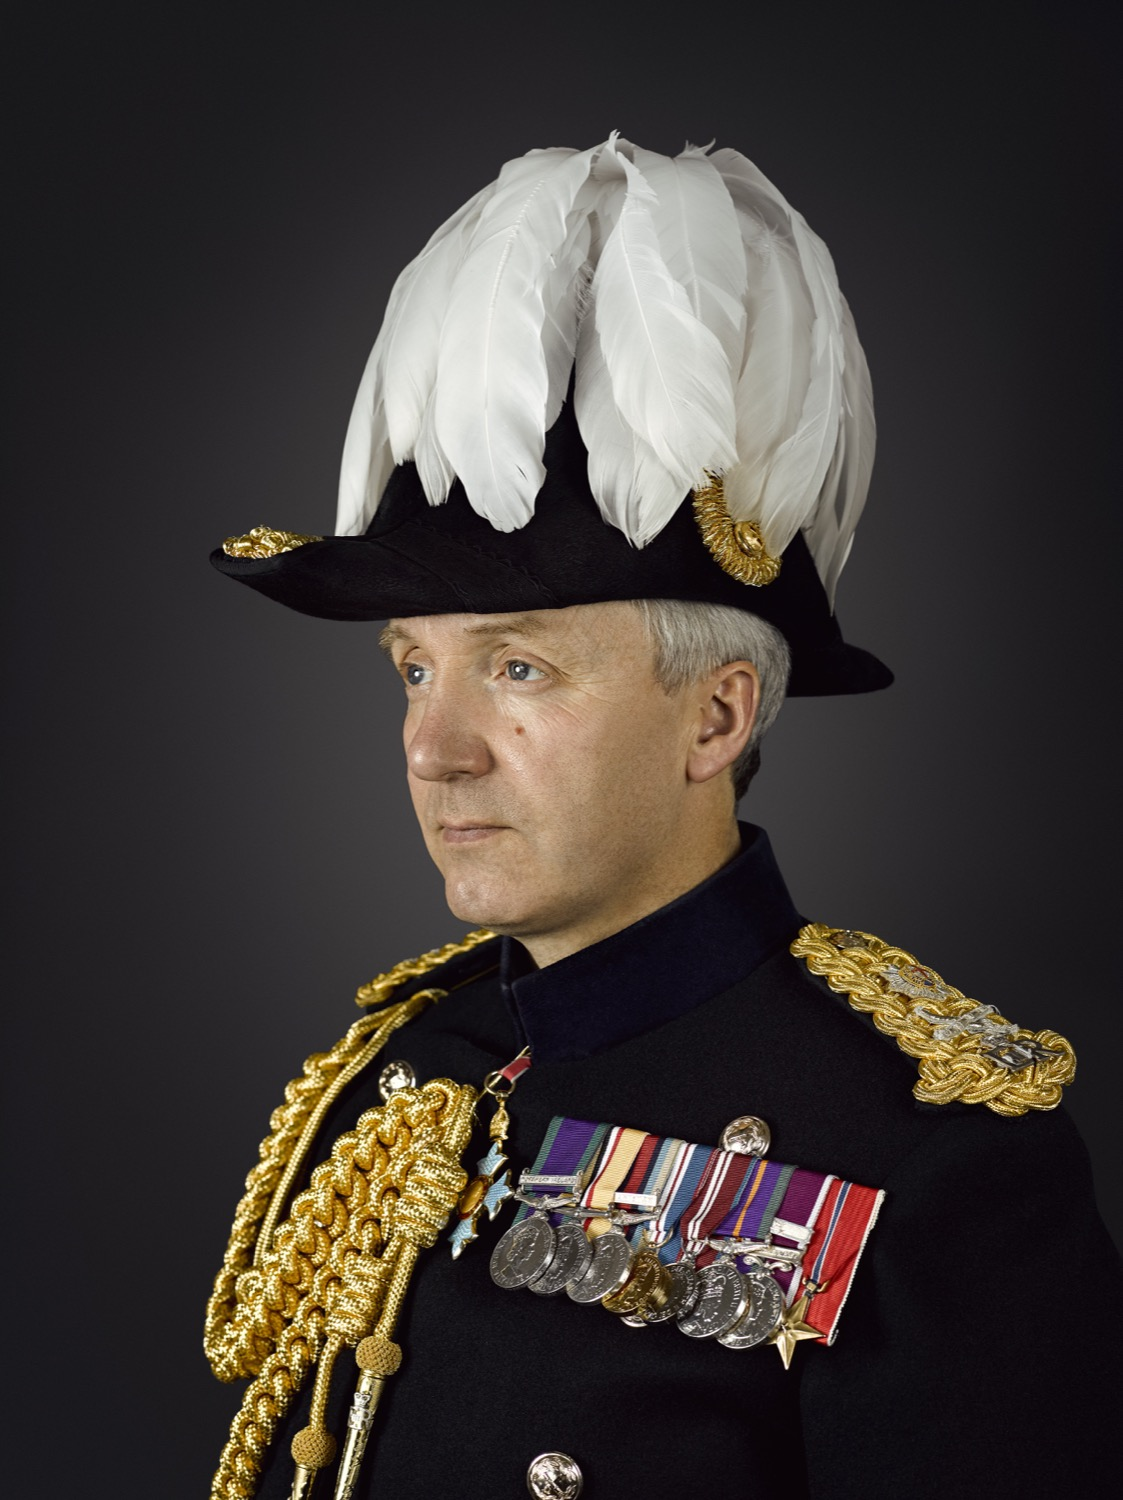 Major General Benjamin Bathurst CBE Portrait Sitting (Rory Lewis Photographer 2019)